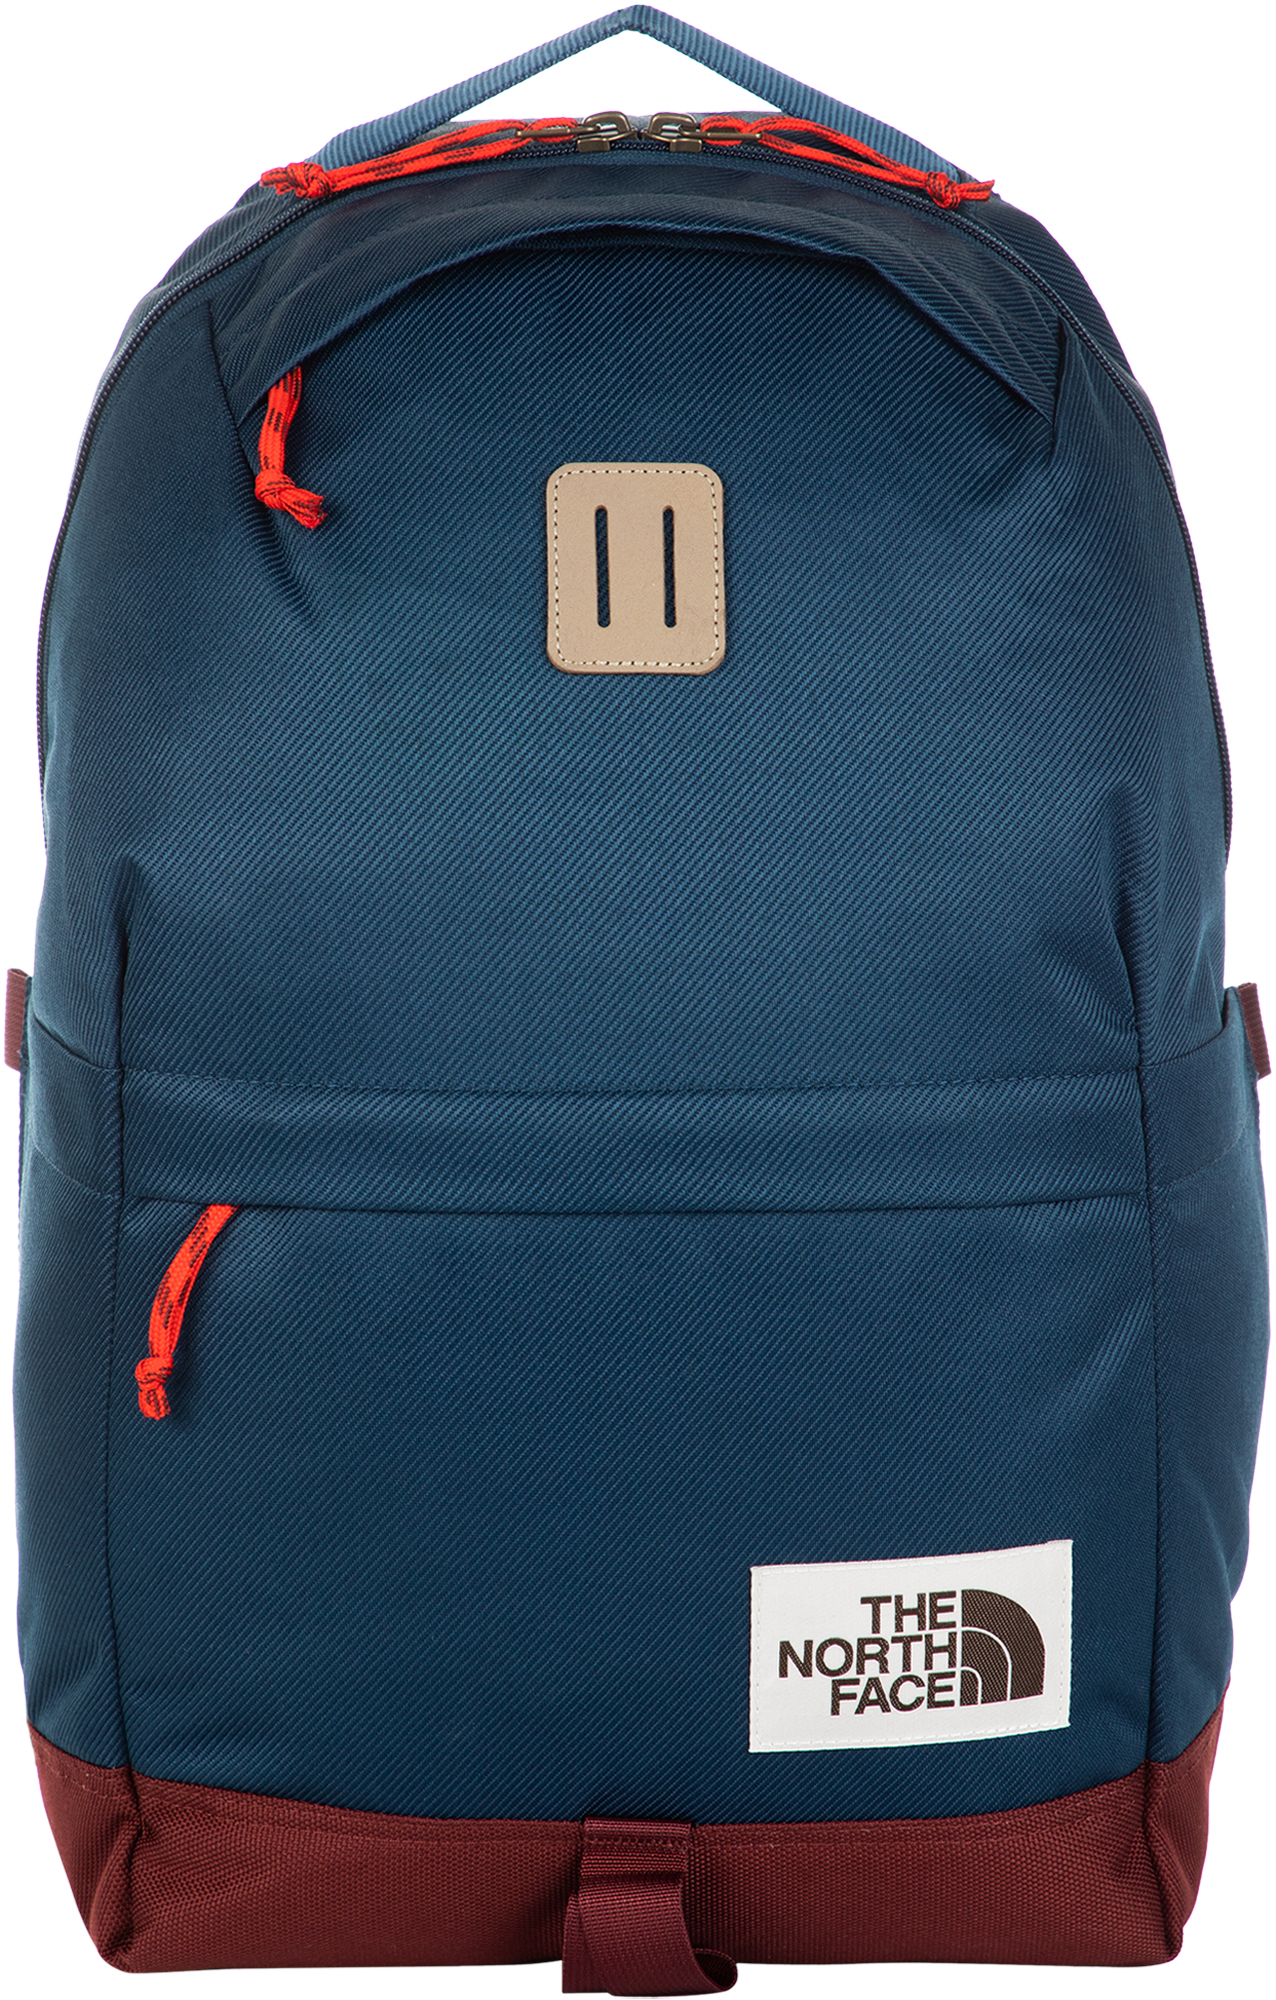 The North Face Рюкзак The North Face Daypack рюкзак the north face the north face lineage ruck синий 23л